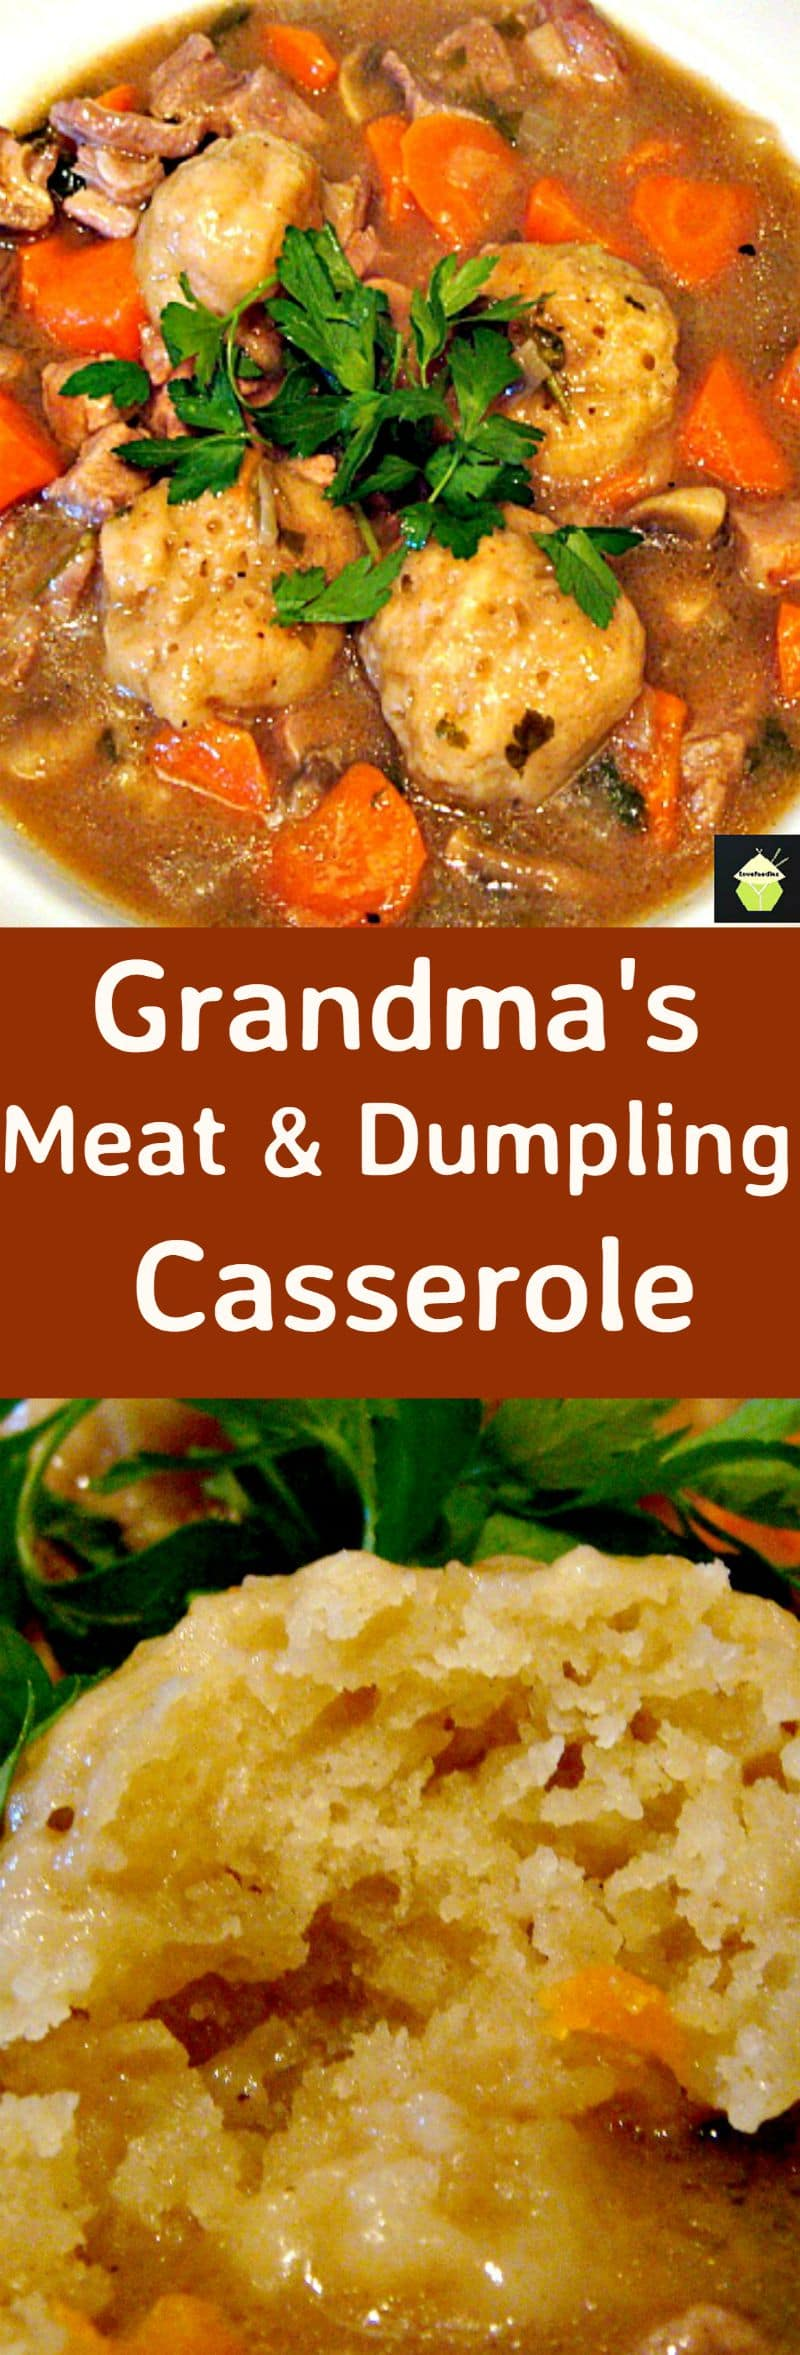 Grandma S Meat And Dumpling Casserole Lovefoodies